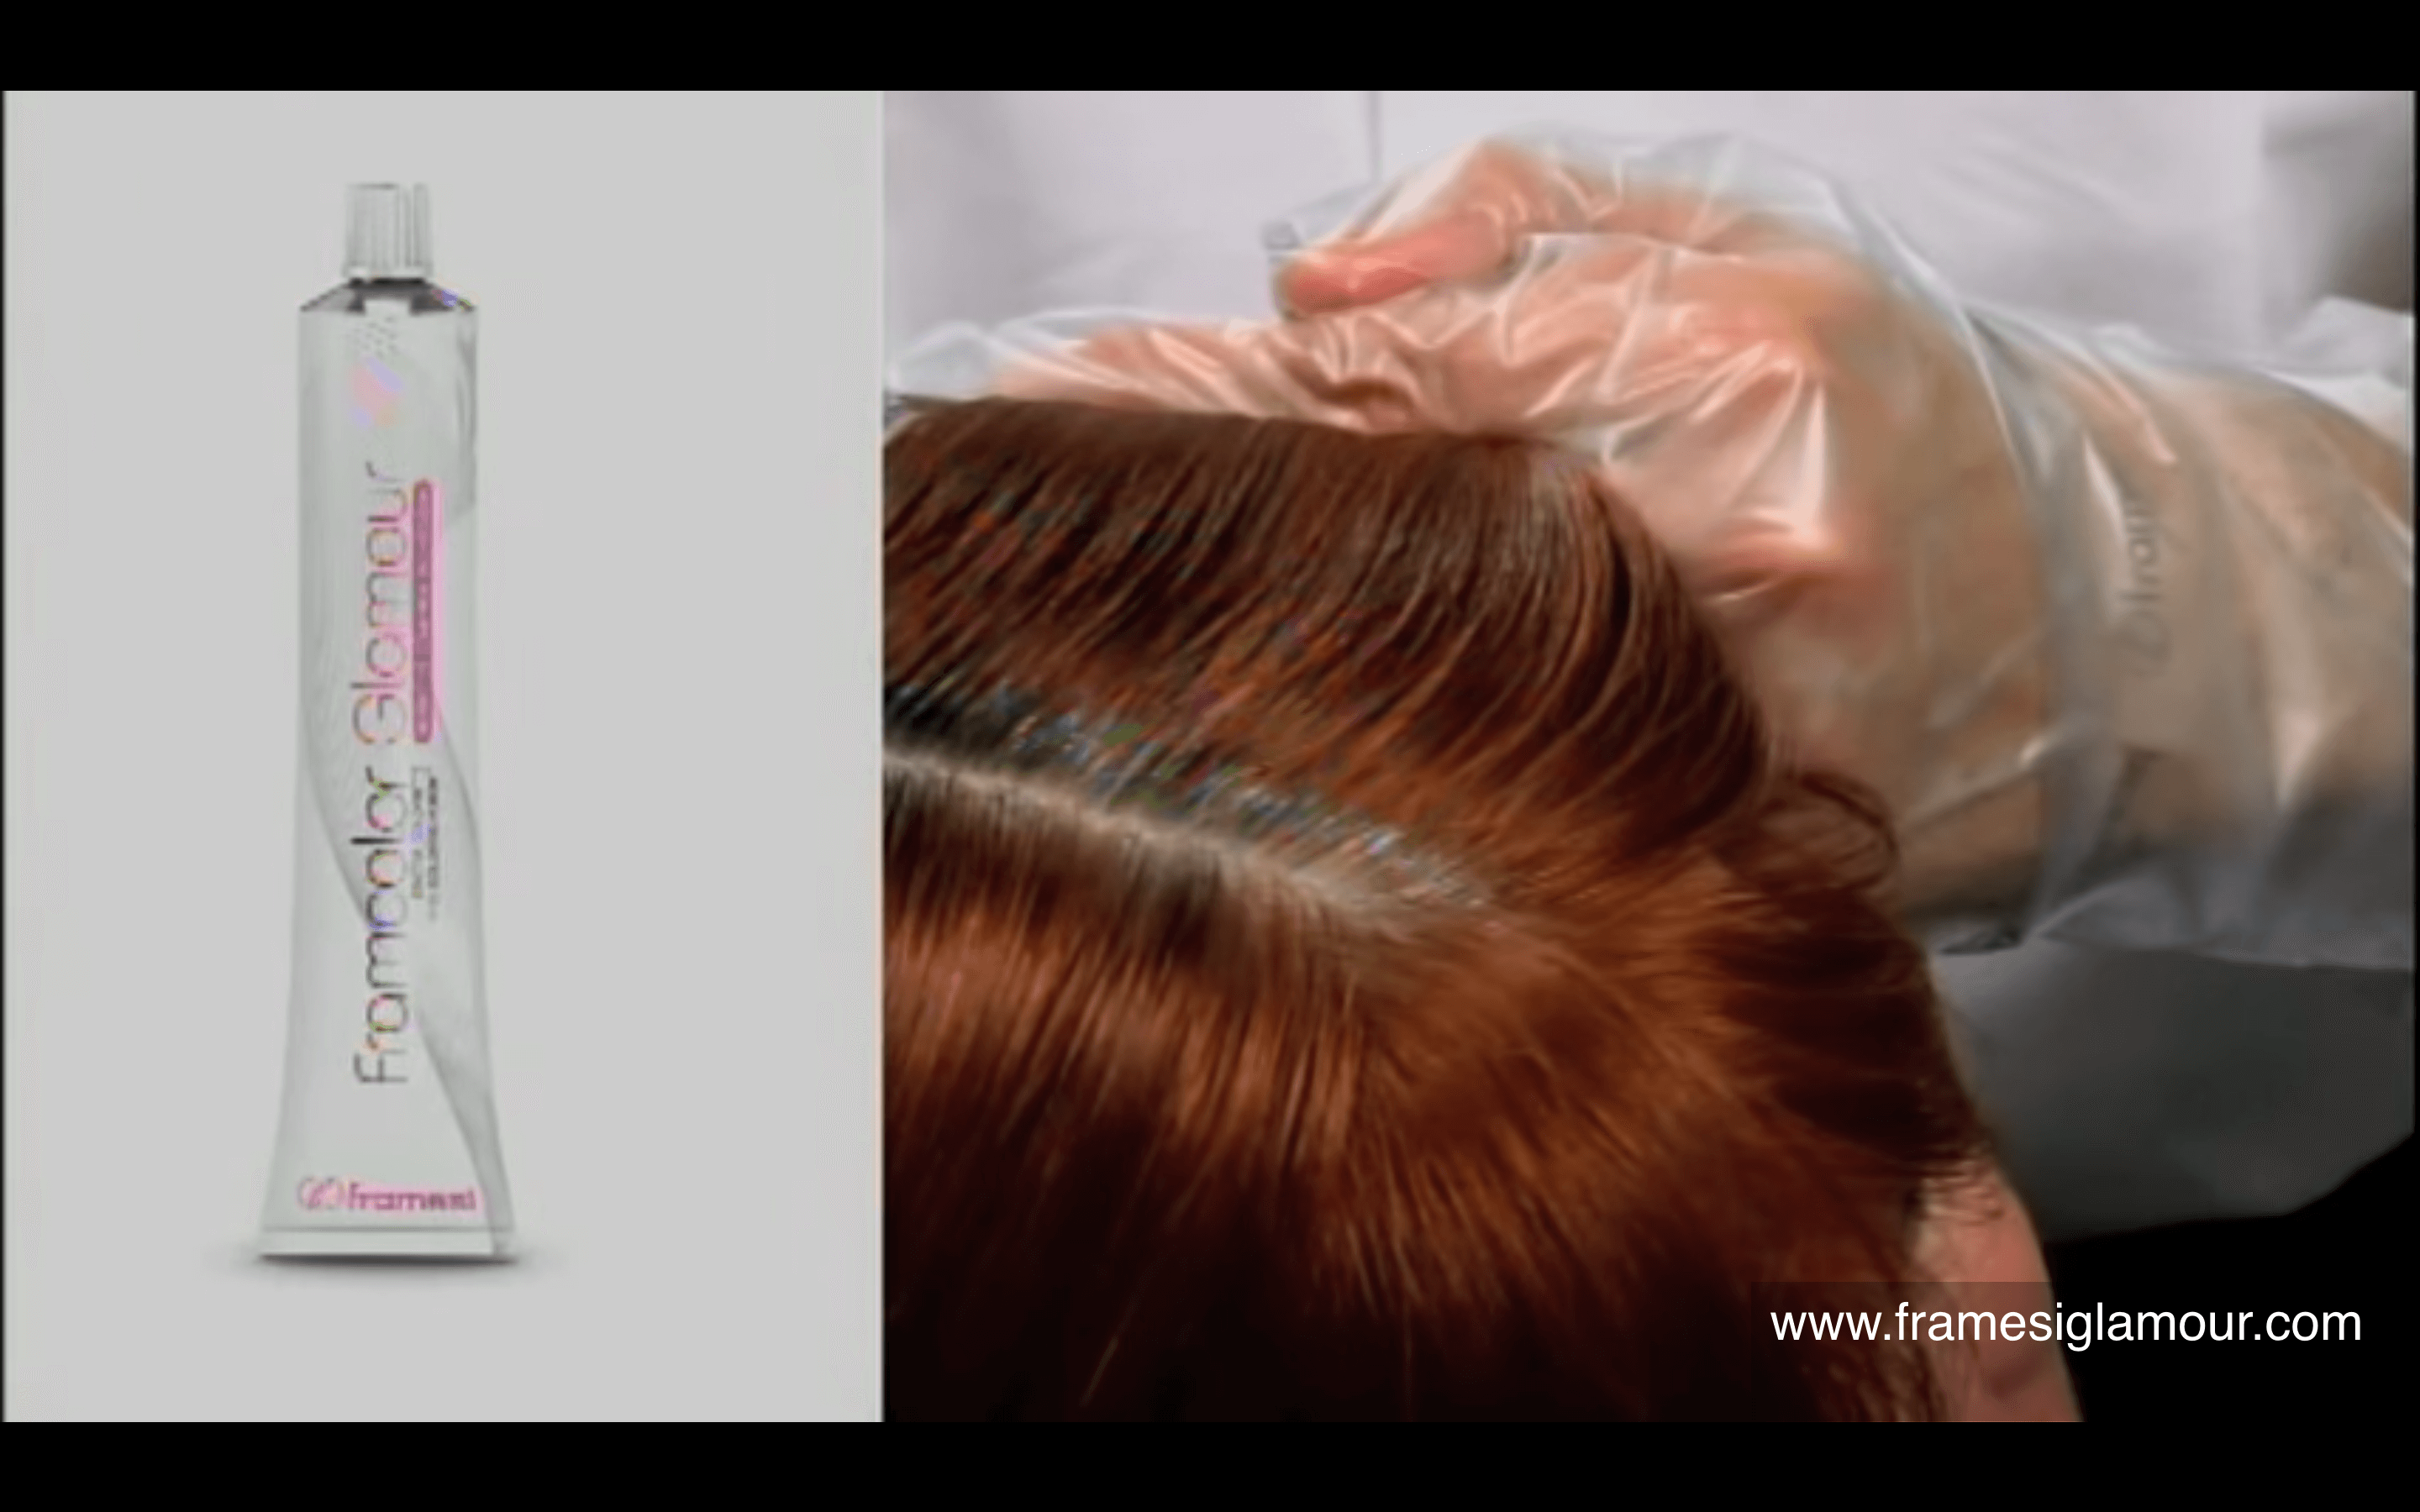 Framcolor glamour framesi framesi framcolor glamour covering grey hair nvjuhfo Image collections